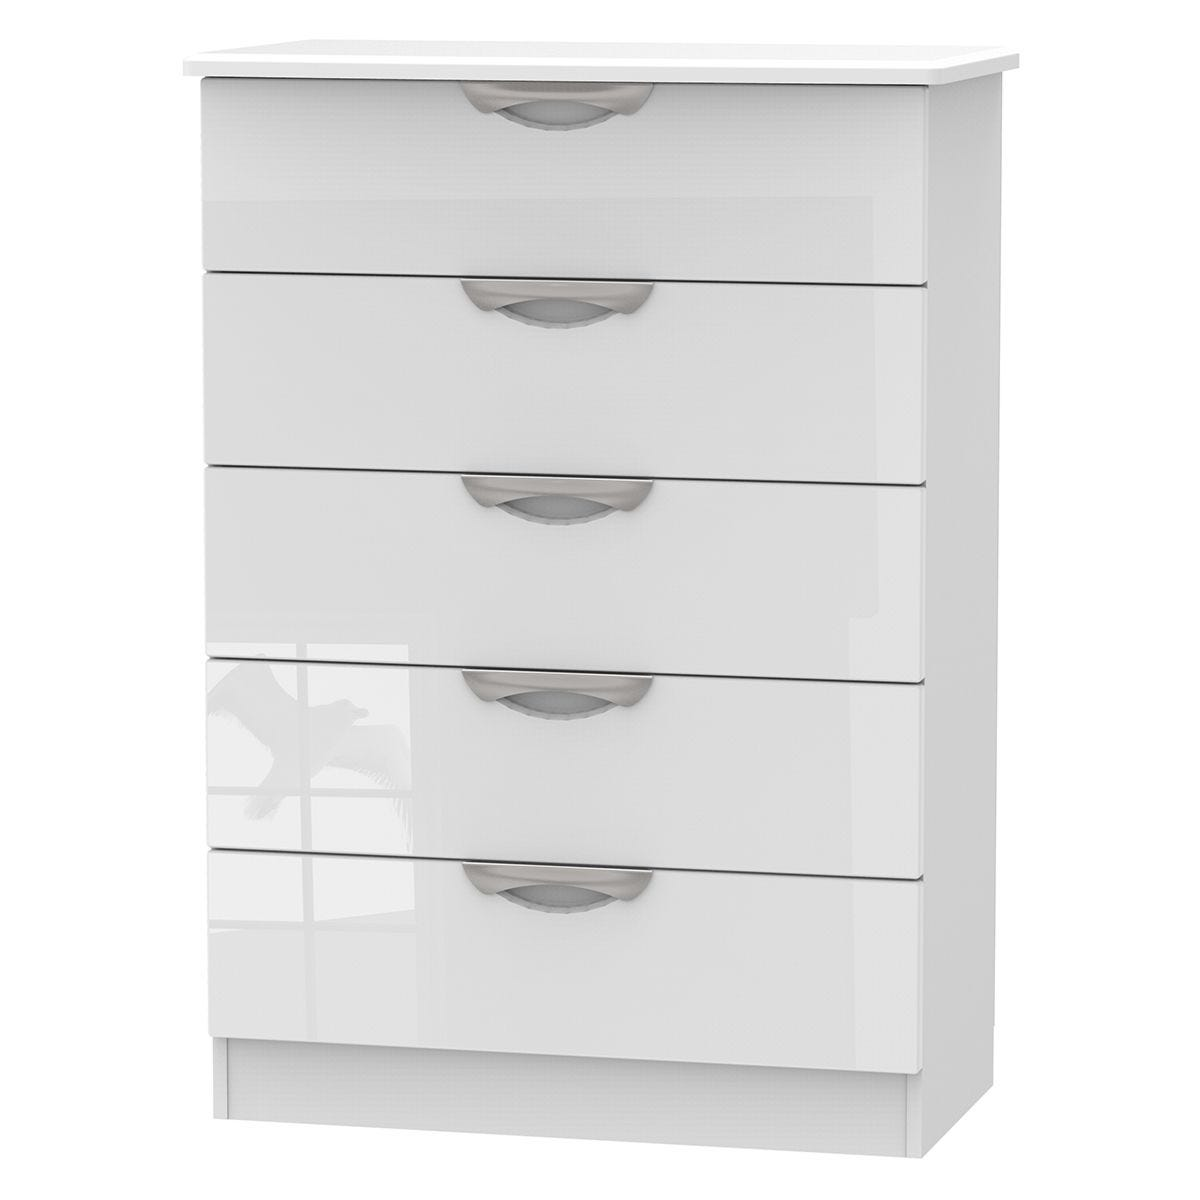 Indices 5-Drawer Chest of Drawers - White